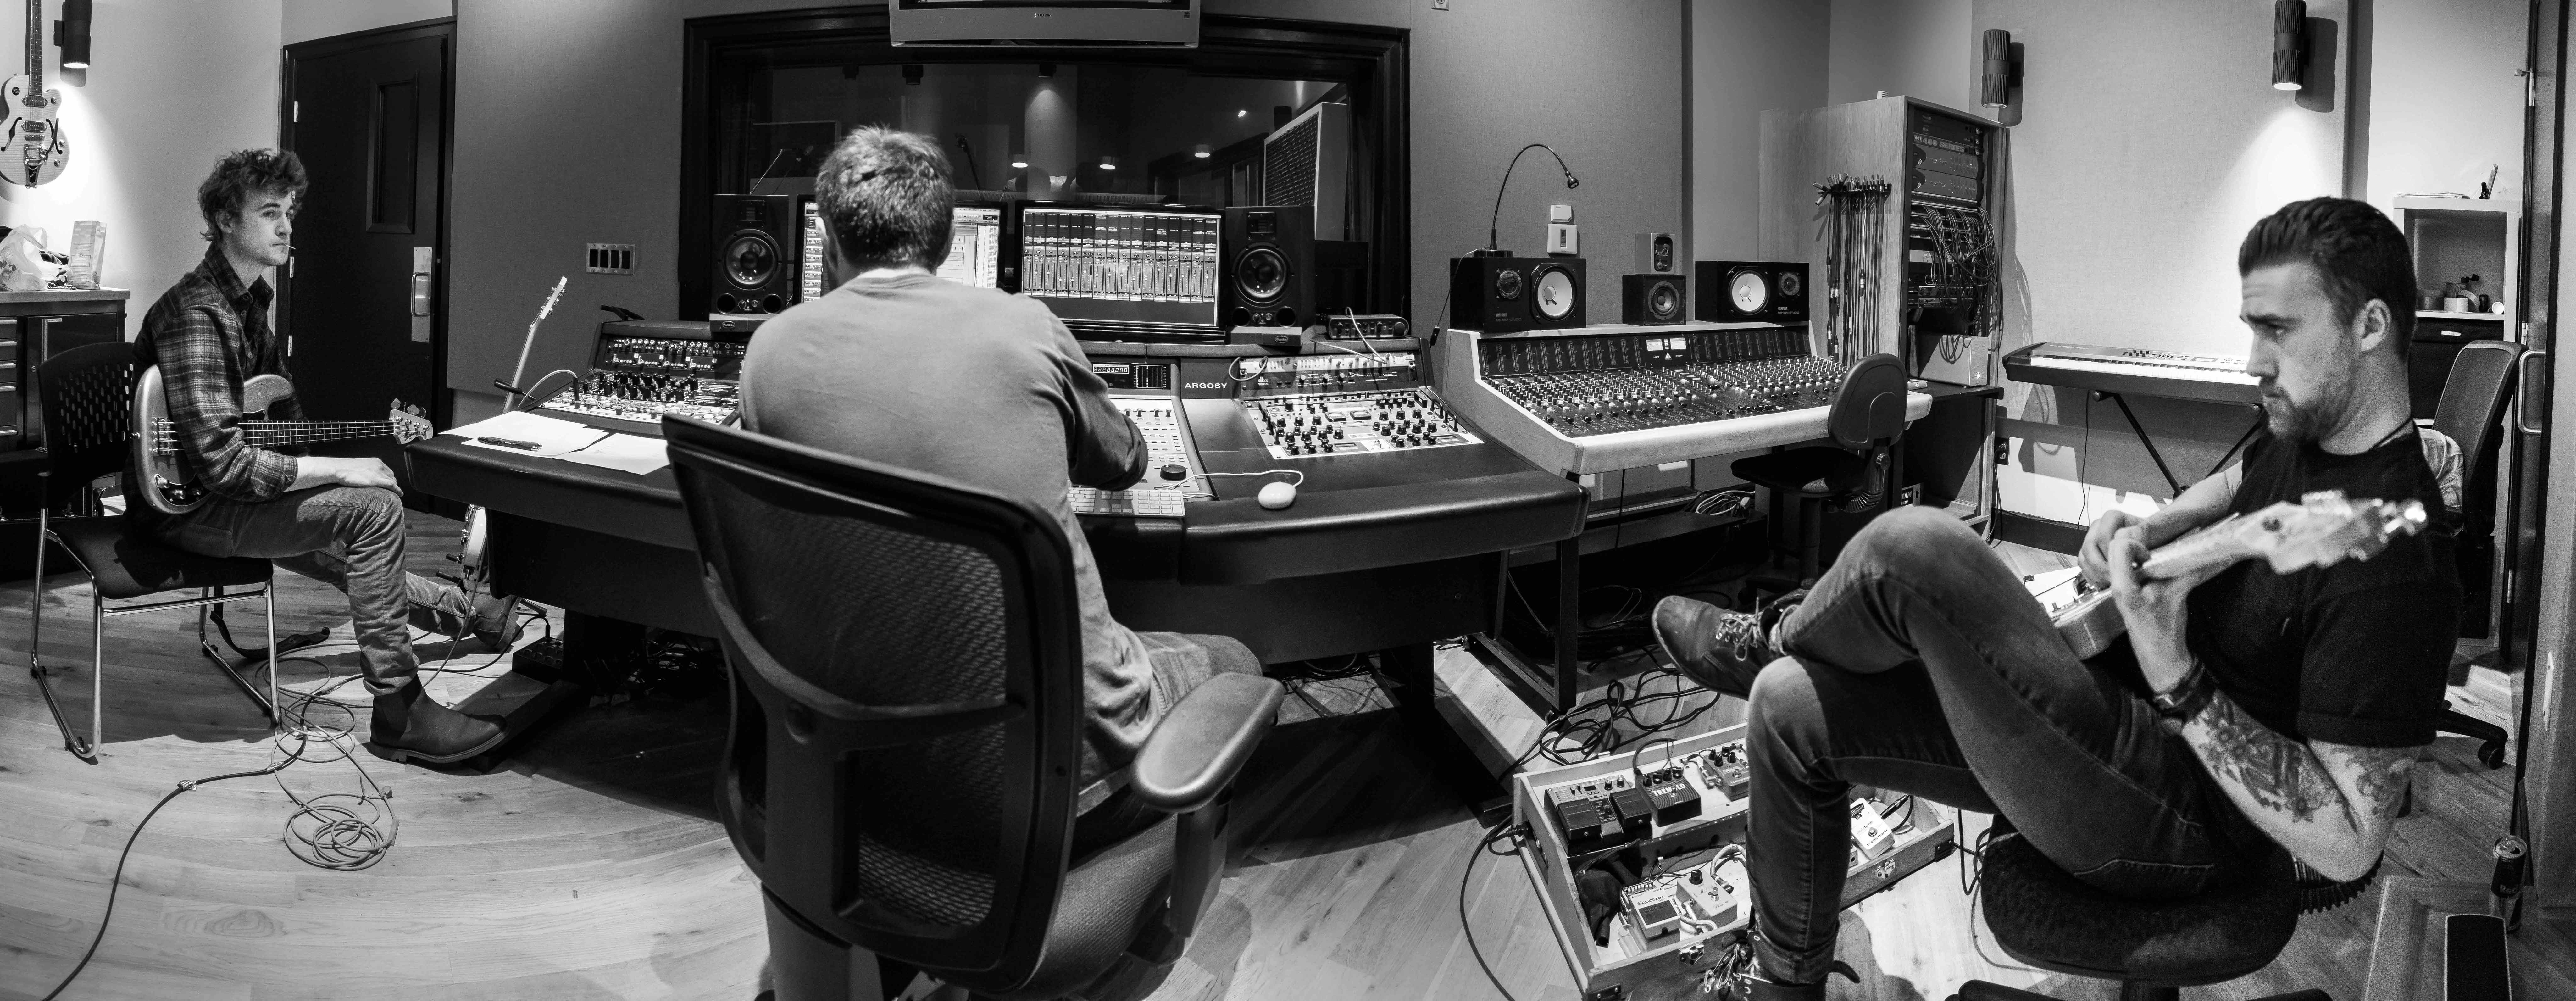 panoramic view of recording studio, guitar, guitarist, bass guitar, bassist, mixer, producer all in the shot as well as the sound board